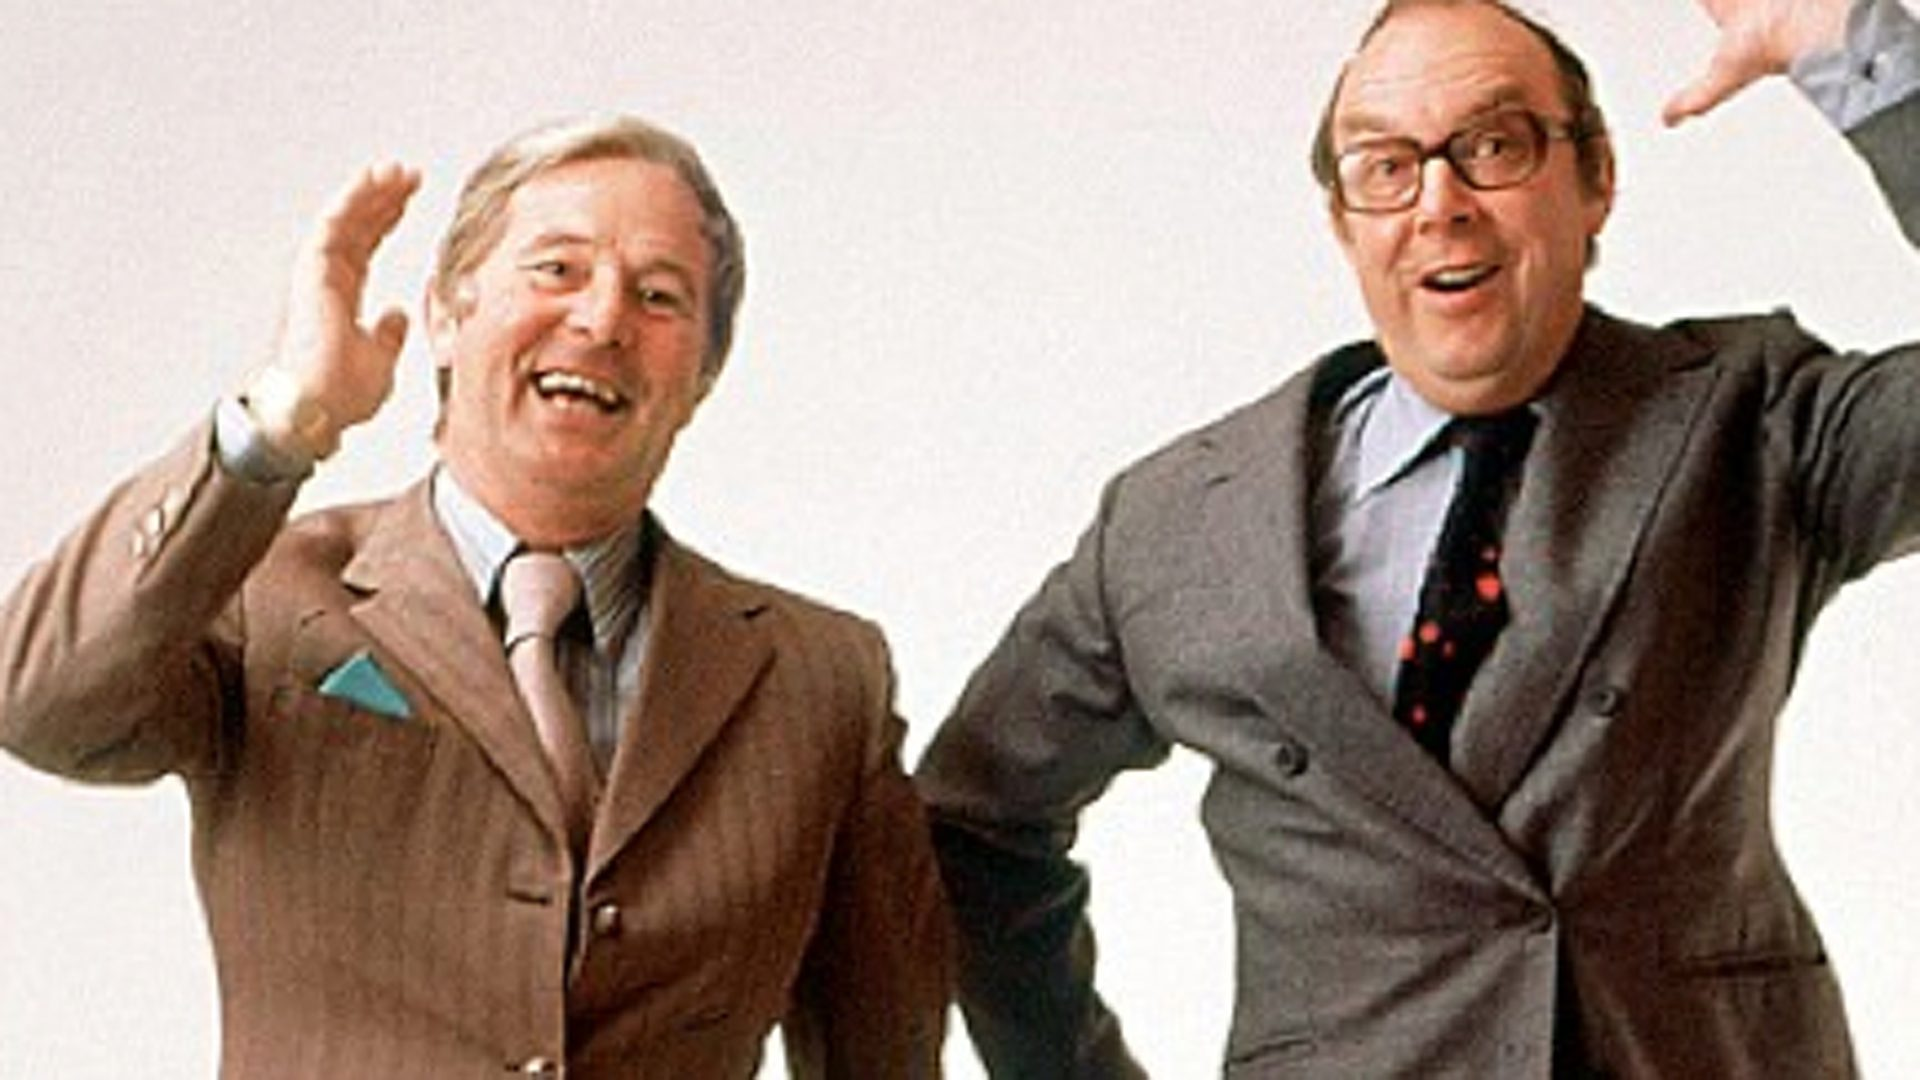 Morecambe and Wise dancing